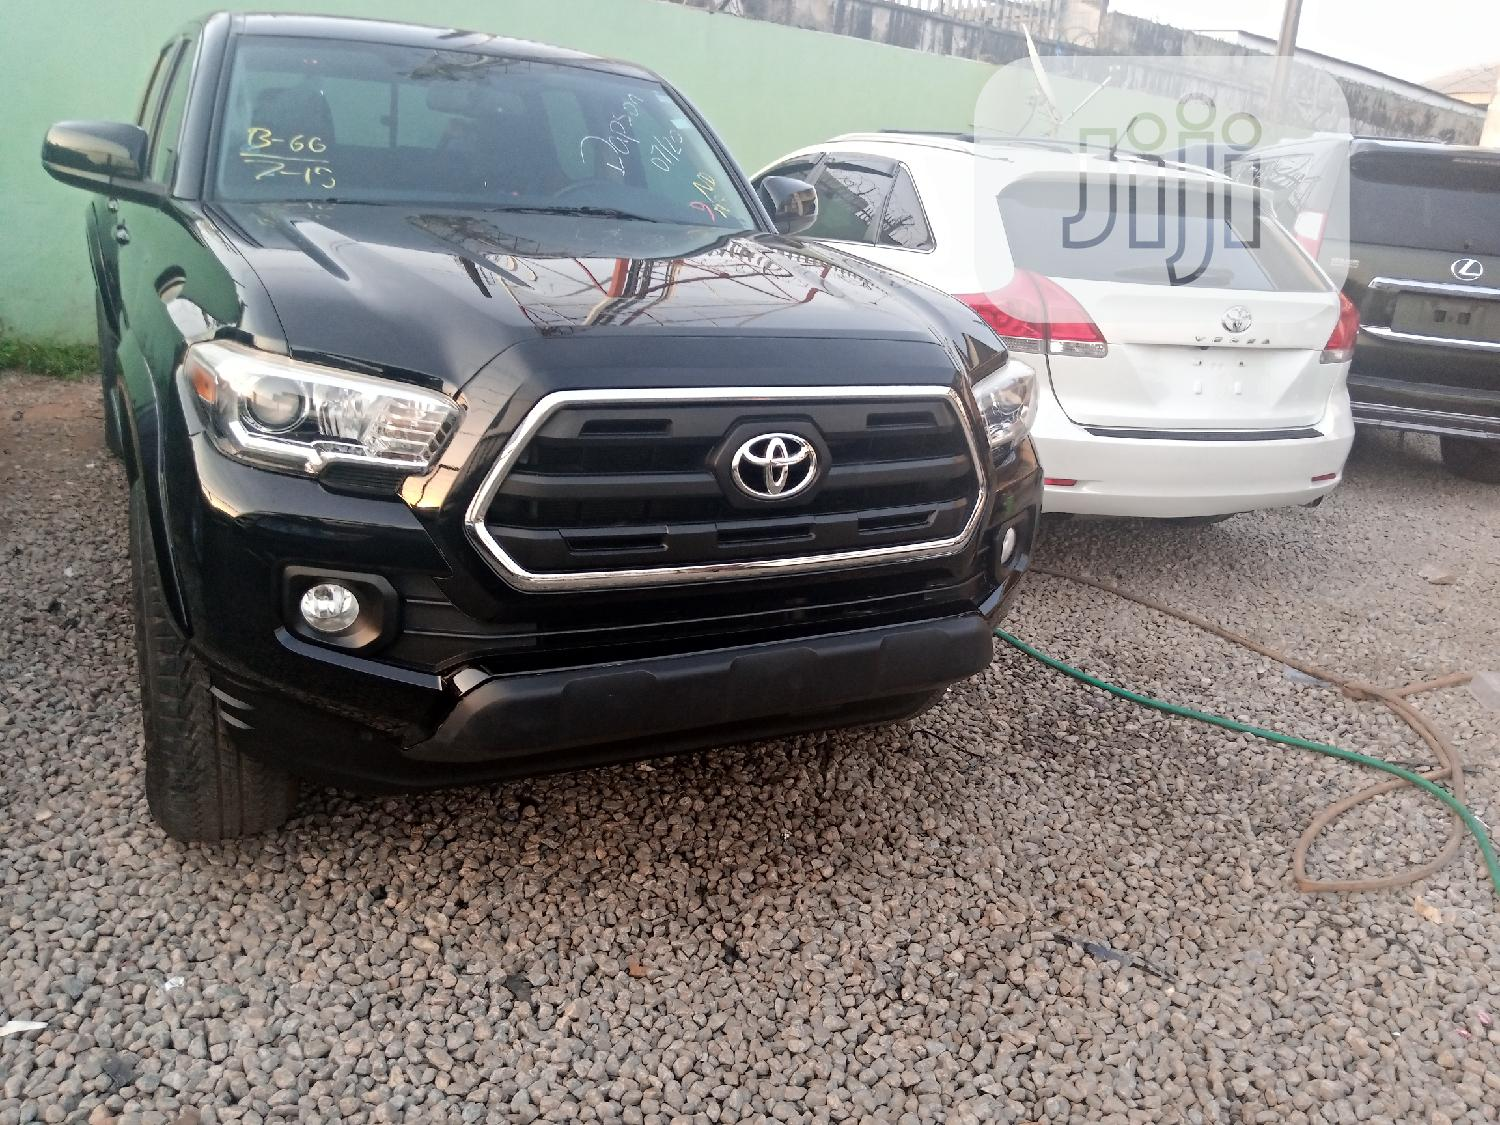 Toyota Tacoma 2016 4dr Double Cab Black | Cars for sale in Ibadan, Oyo State, Nigeria